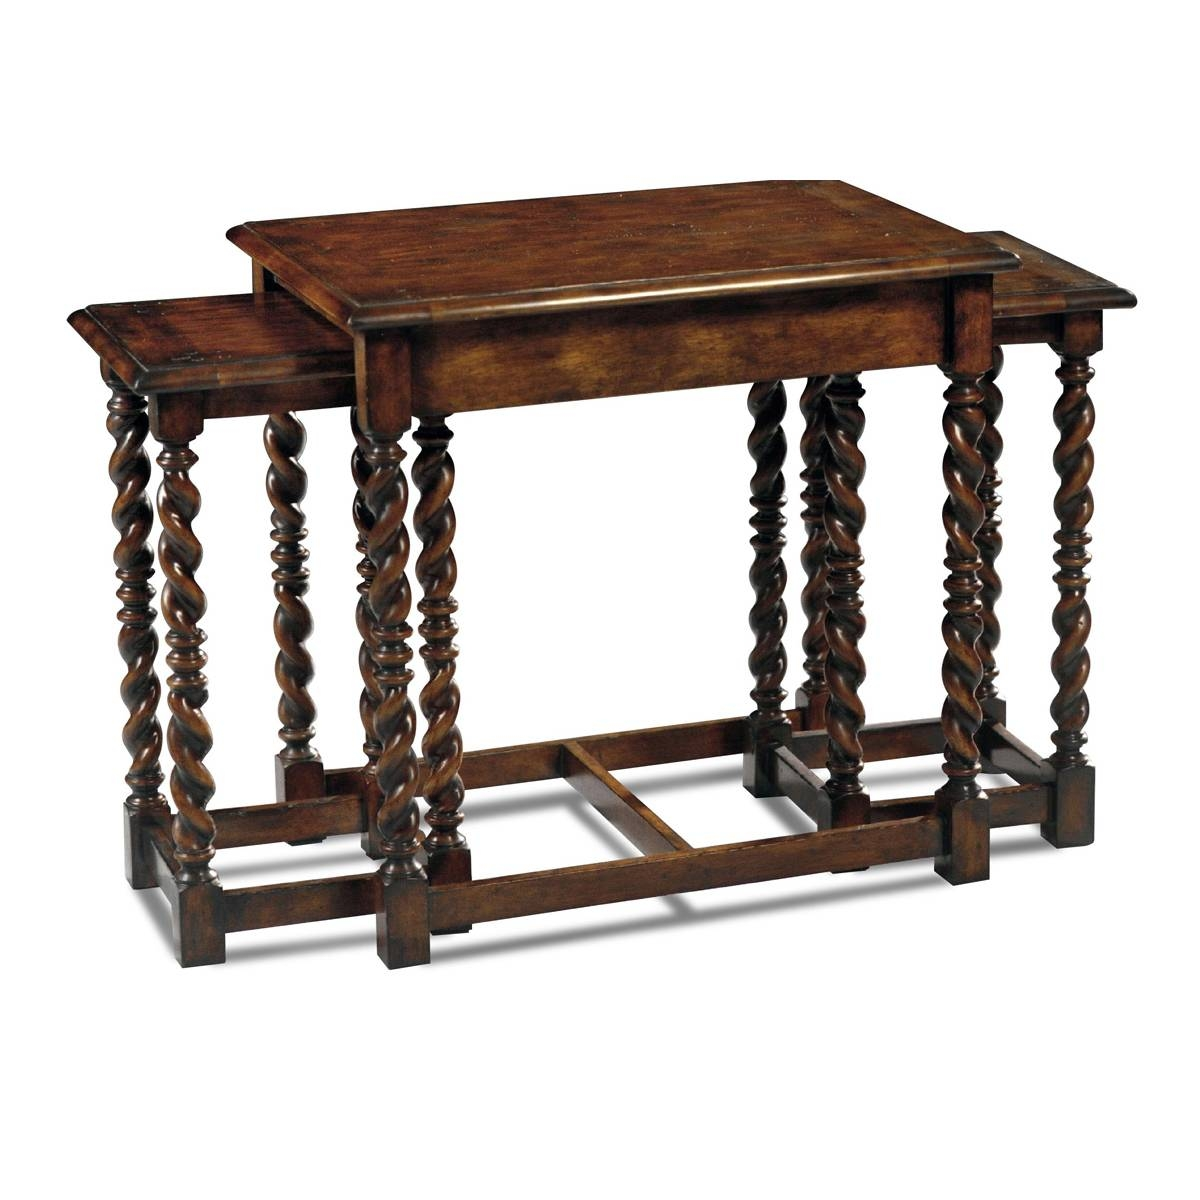 Country English Style Nesting Coffee Table|English Antiques within Nest Coffee Tables (Image 9 of 30)